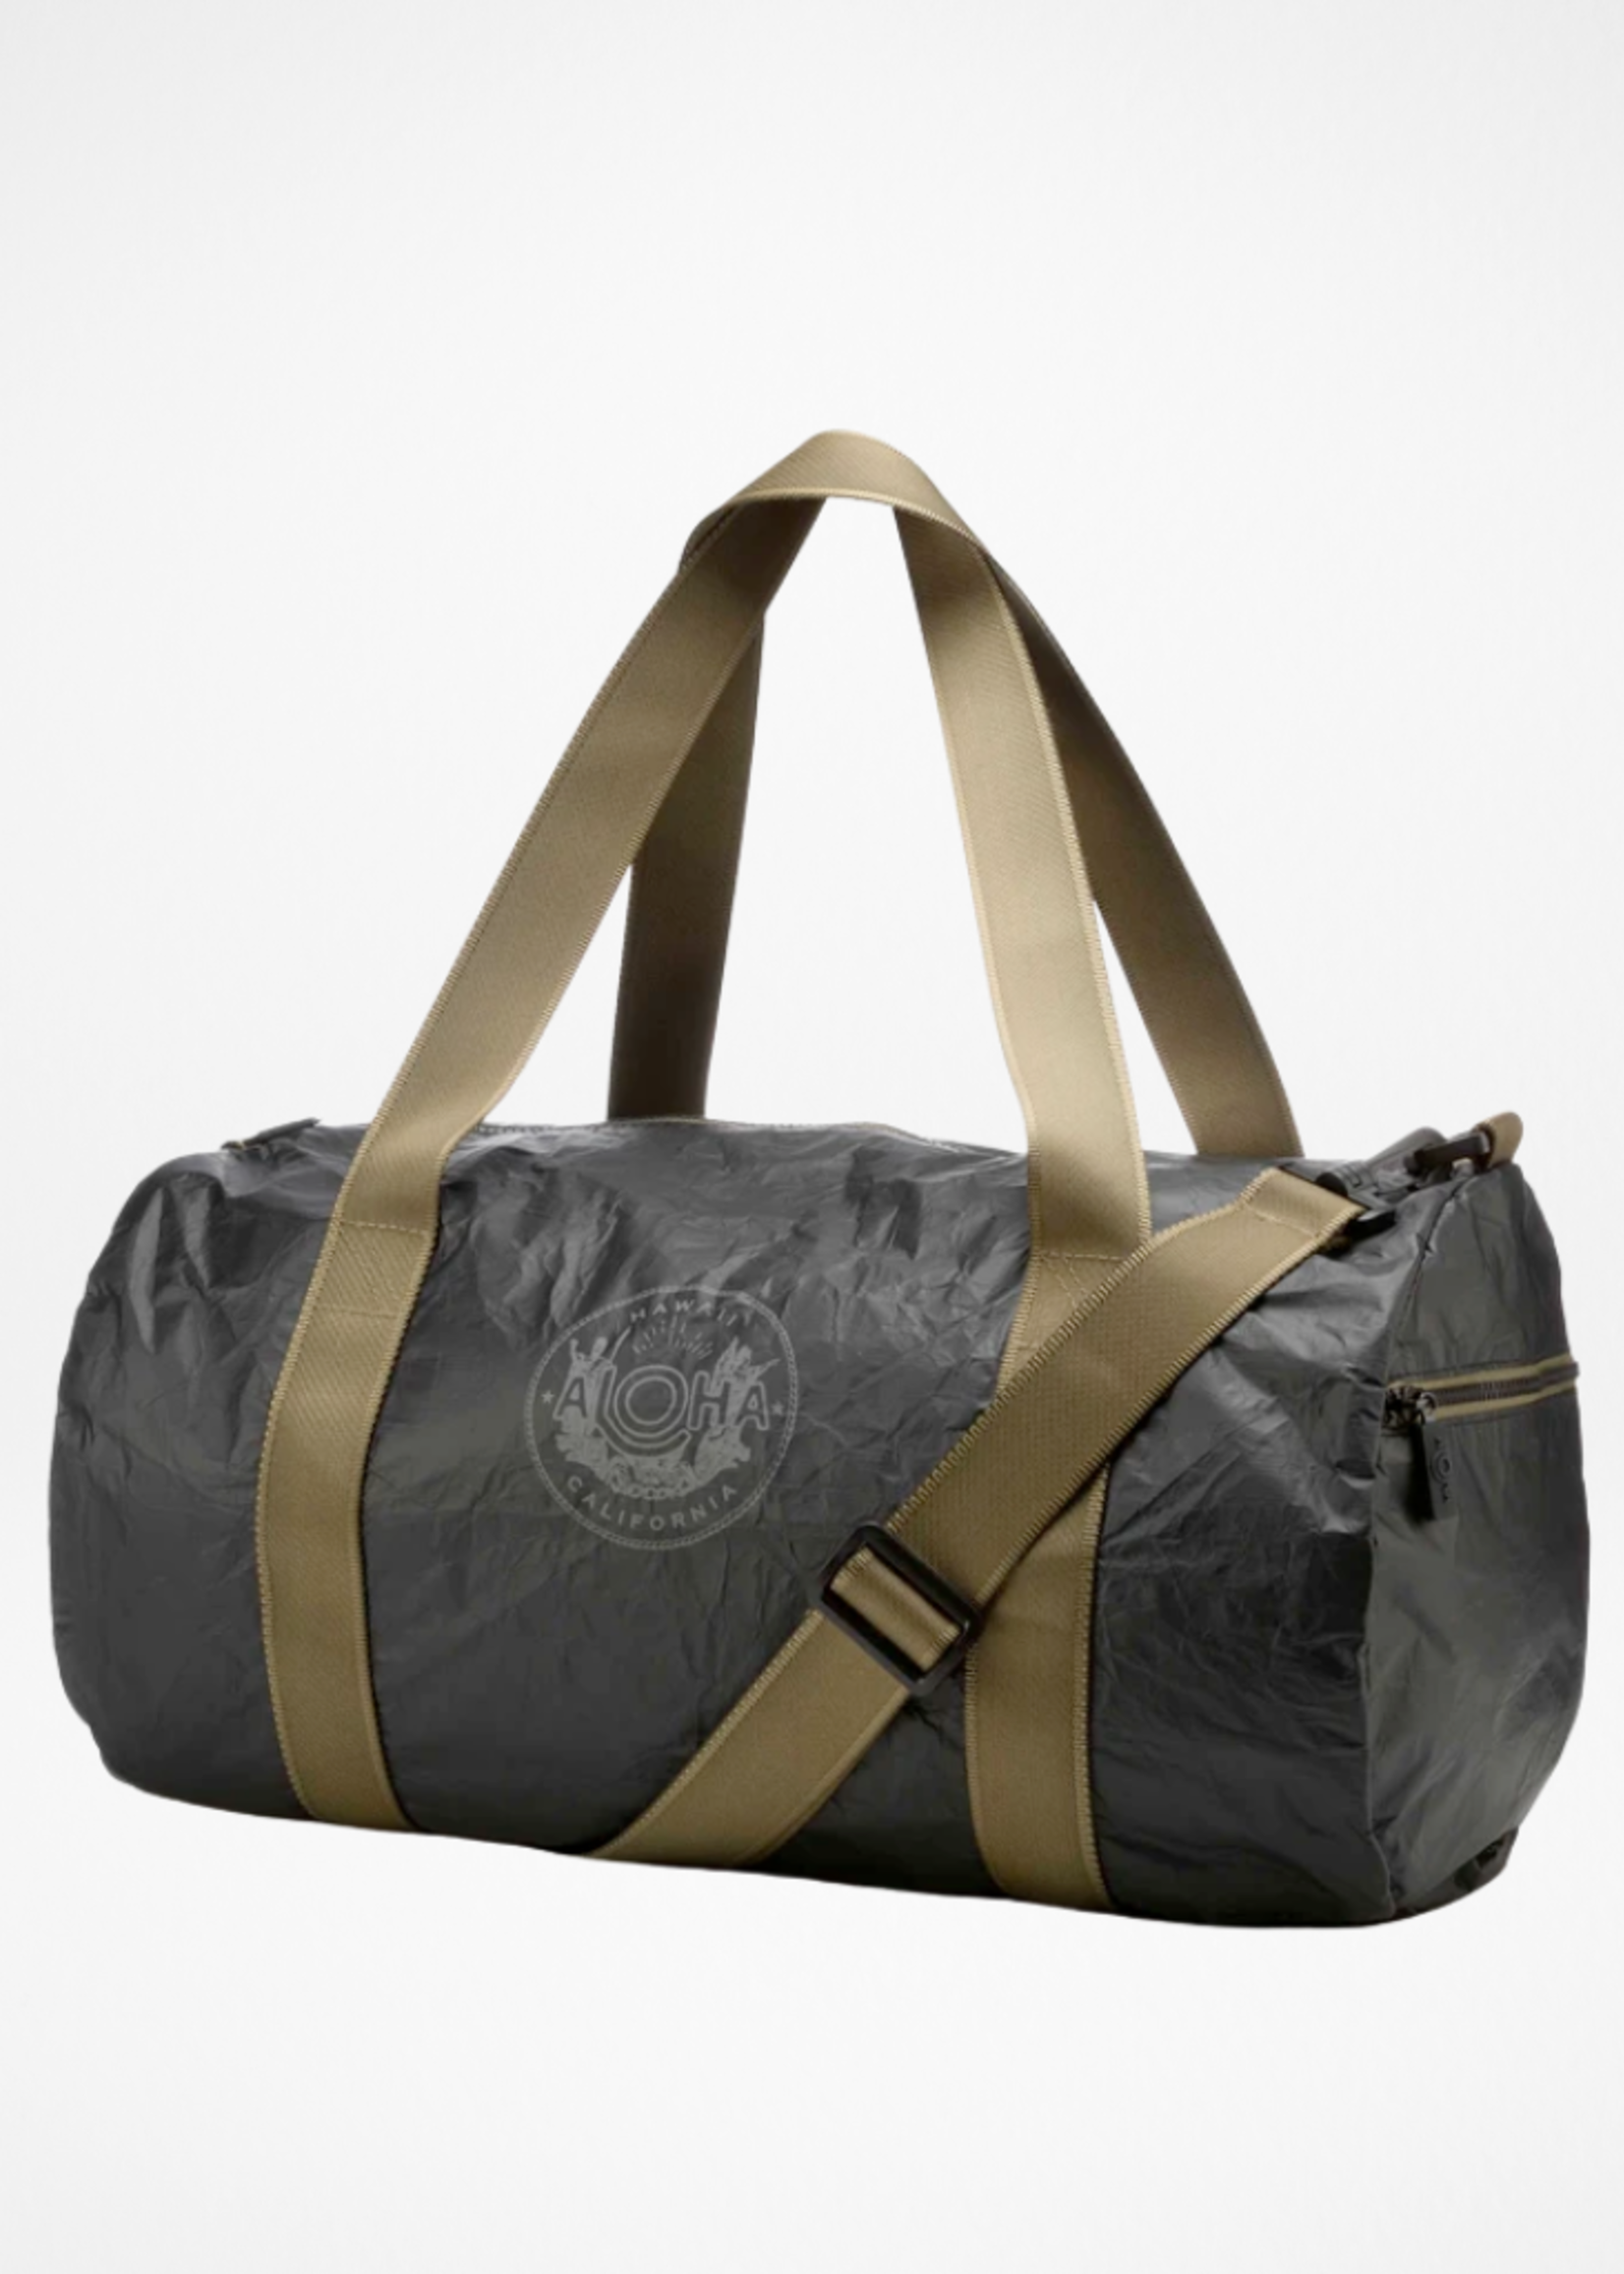 21 ALOHA COLLECTION DUFFLE BAG